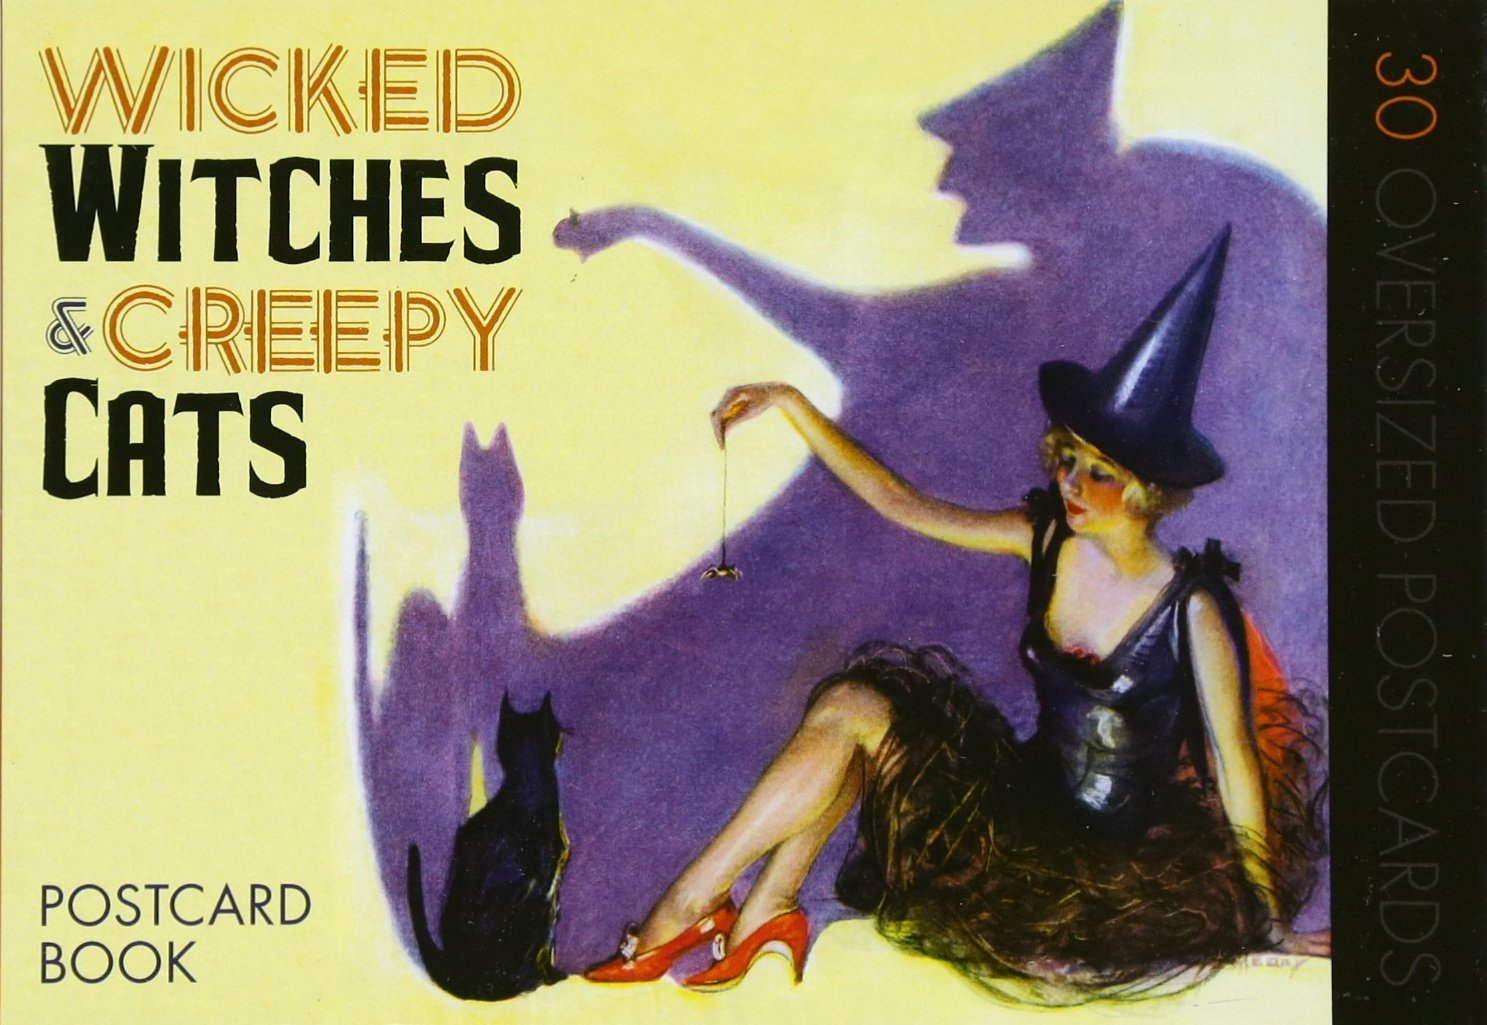 Wicked Witches & Creepy Cats: Postcard Book (Halloween)